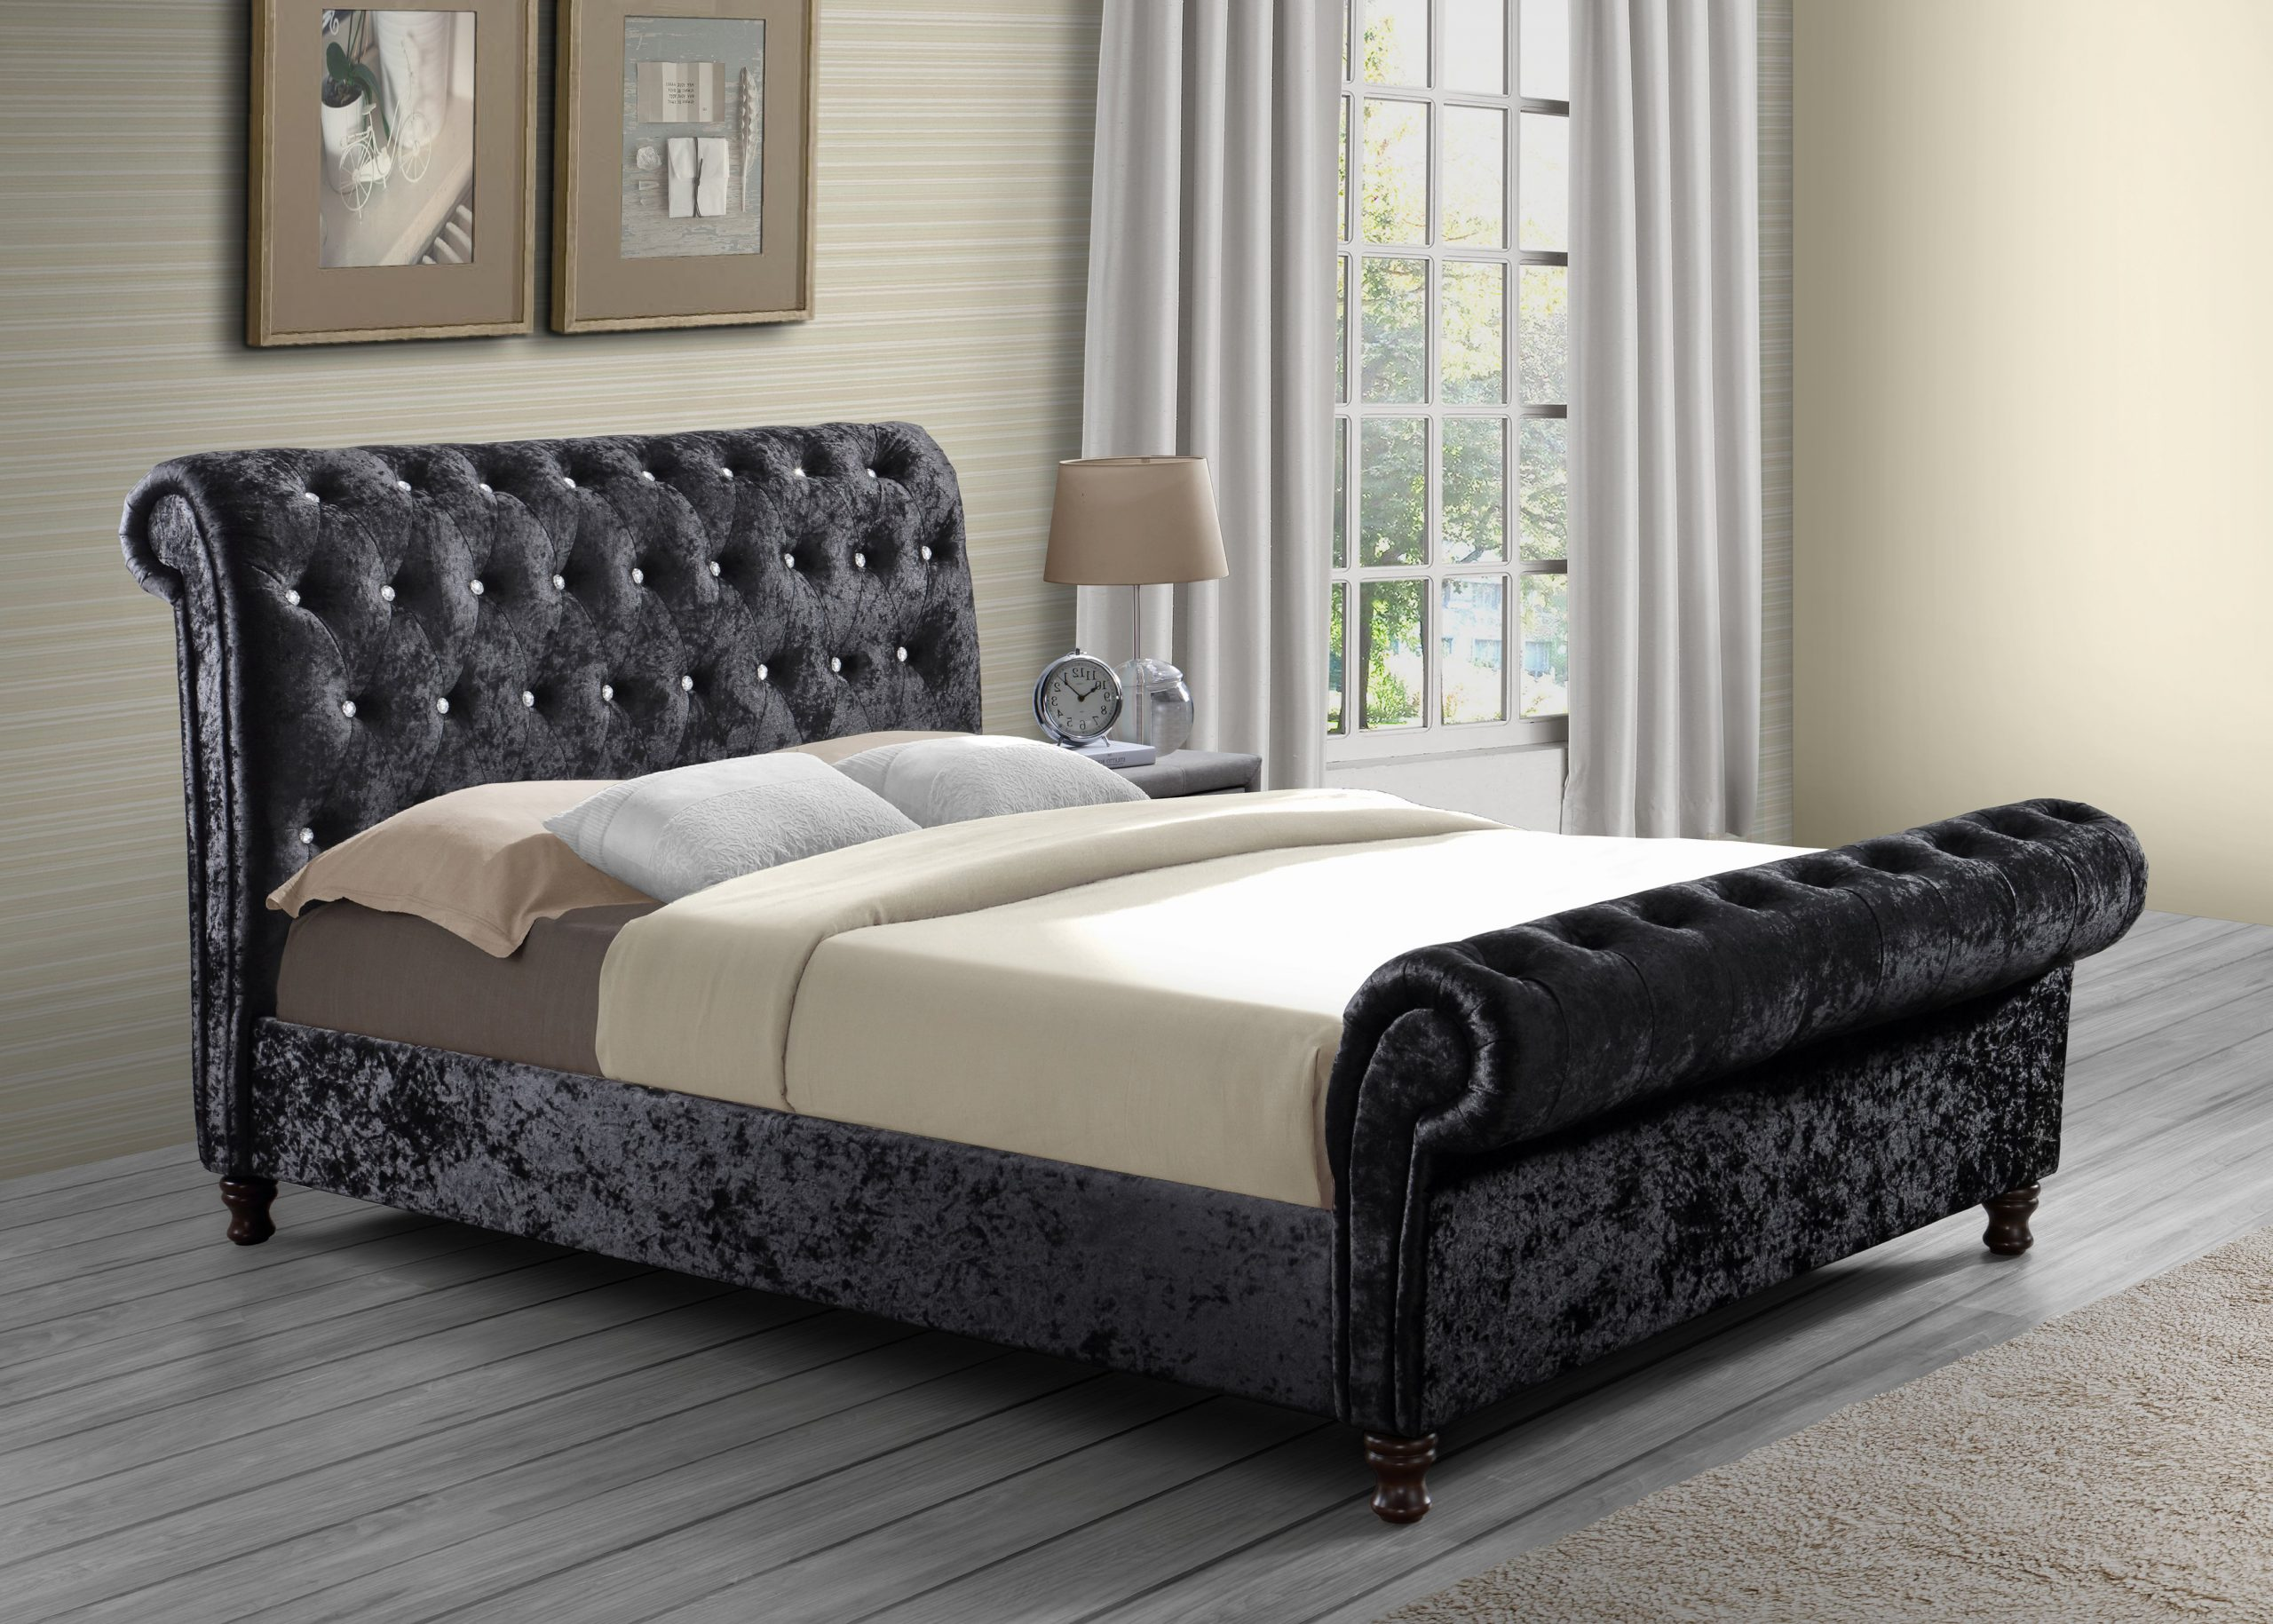 Birlea Bordeaux Kingsize Fabric Bedframe